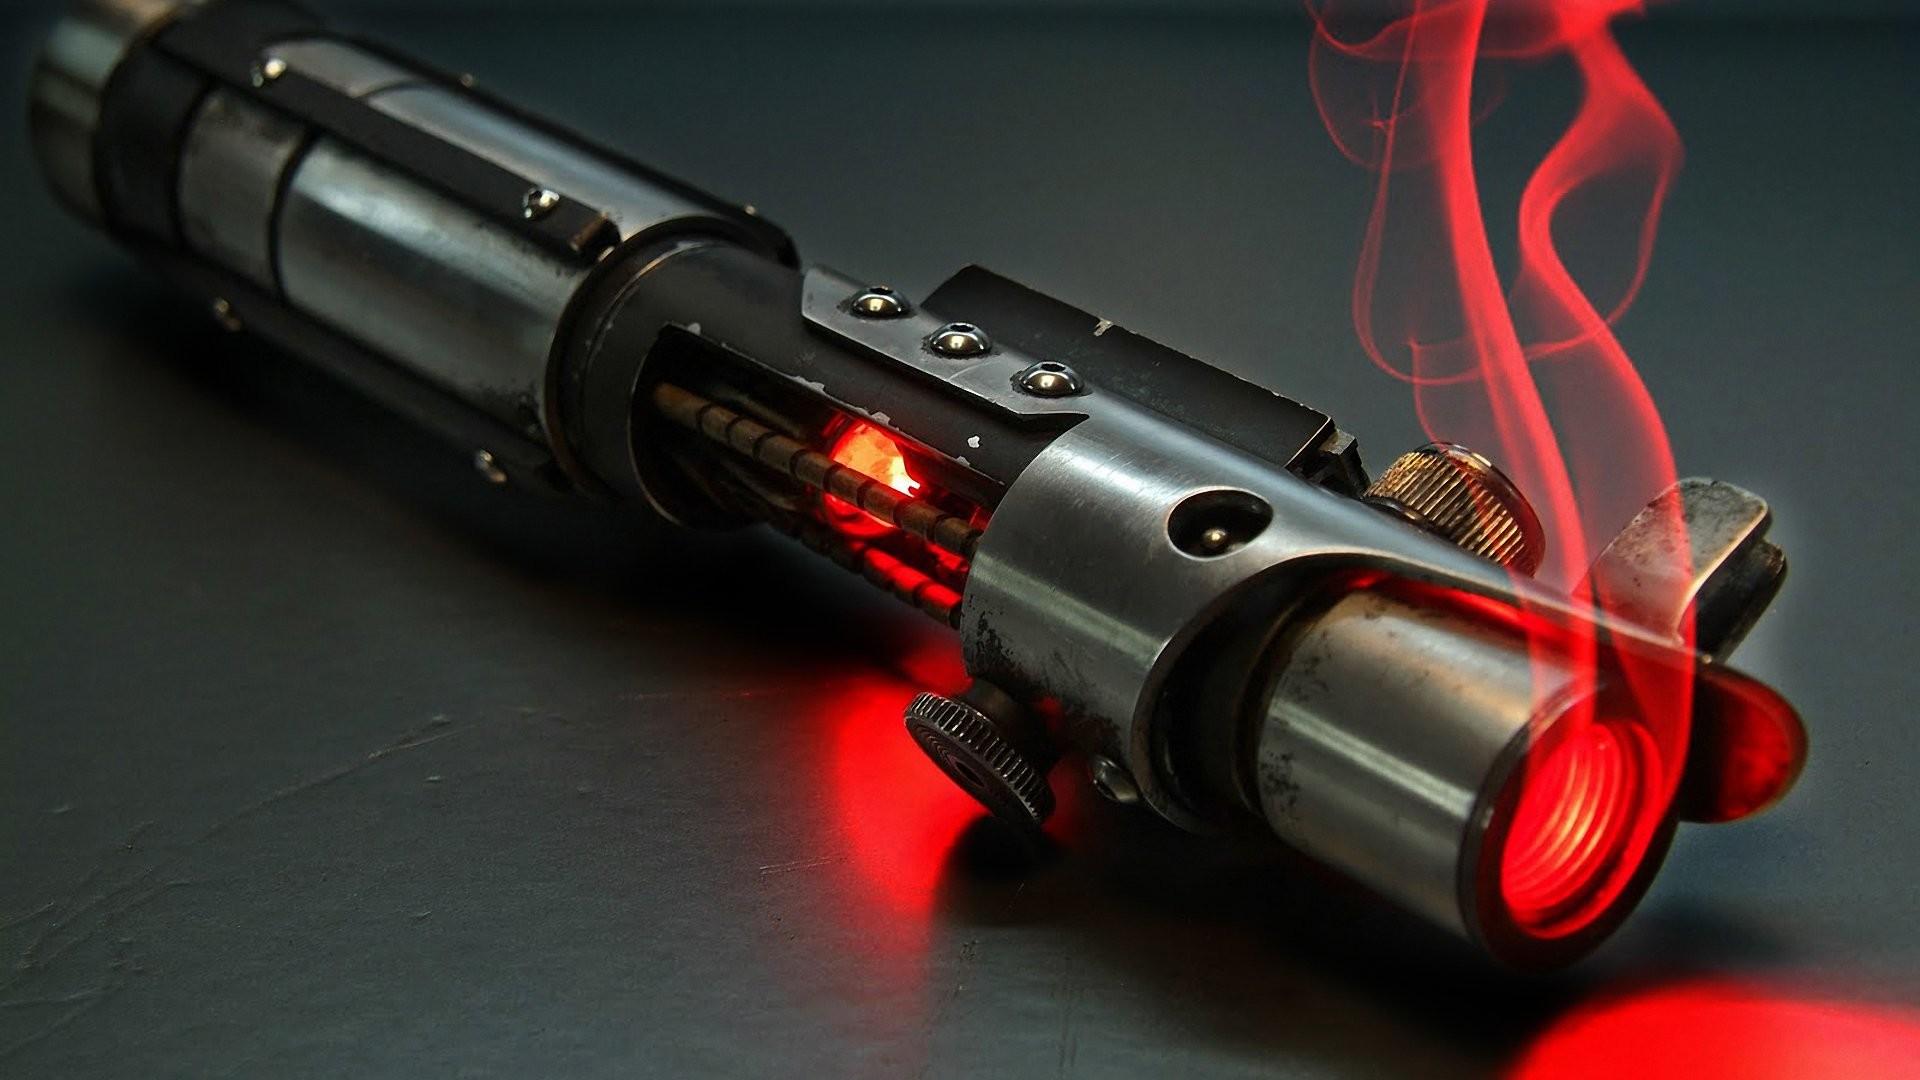 69 Red Lightsaber Wallpapers on WallpaperPlay 1920x1080